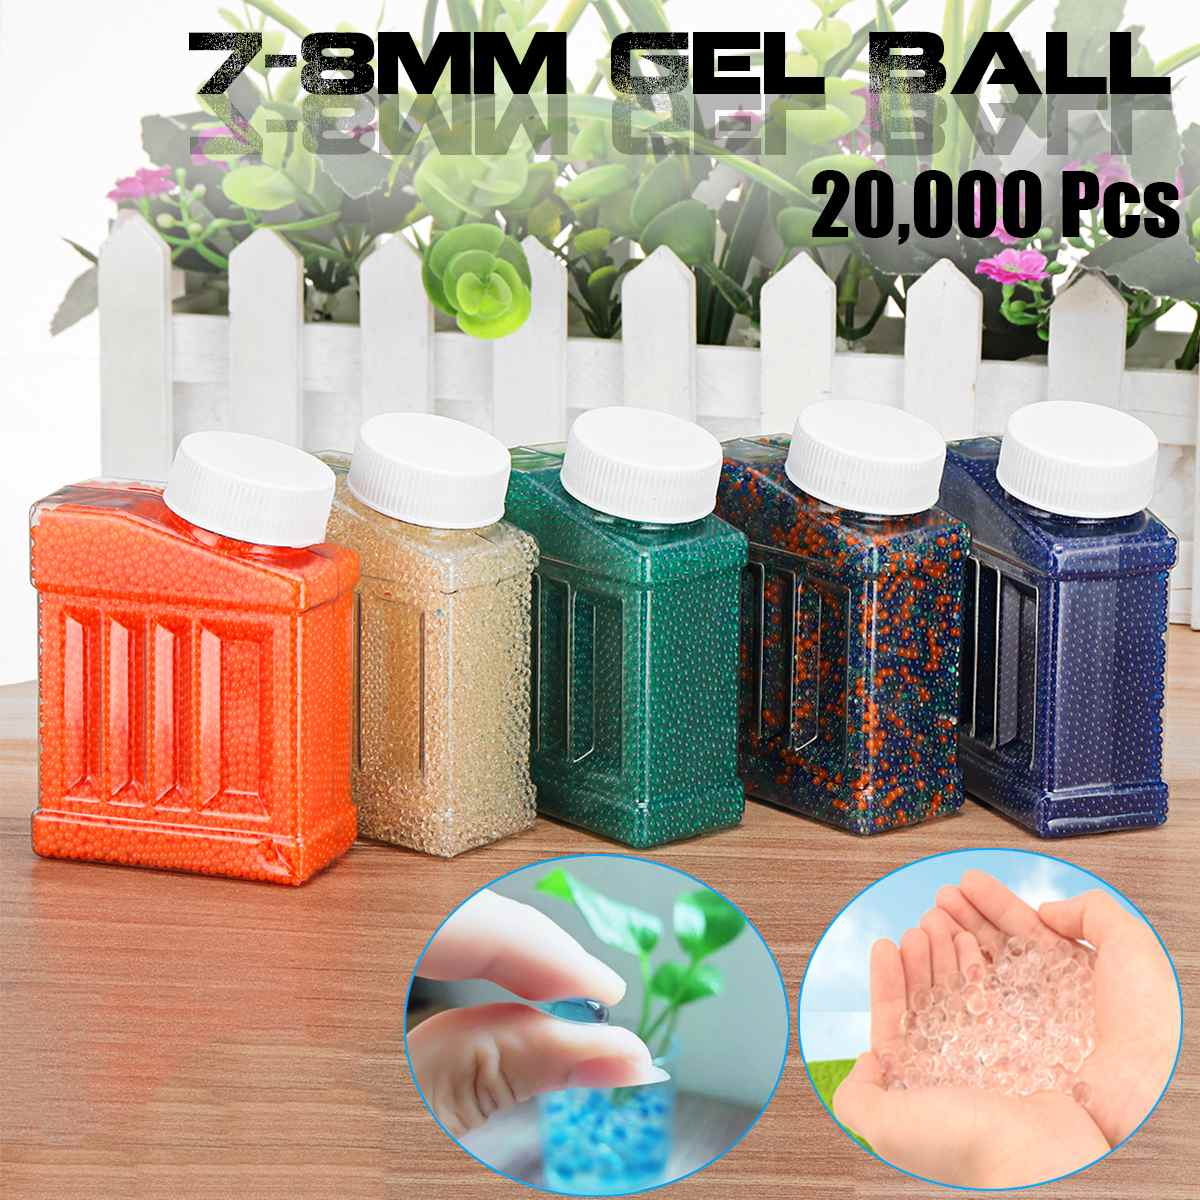 20000Pcs 7-8mm Crystal Bullets Water Ammo Beads For Gel Ball Guns Blasters Toy Water Guns Ammo Shotting Bullets